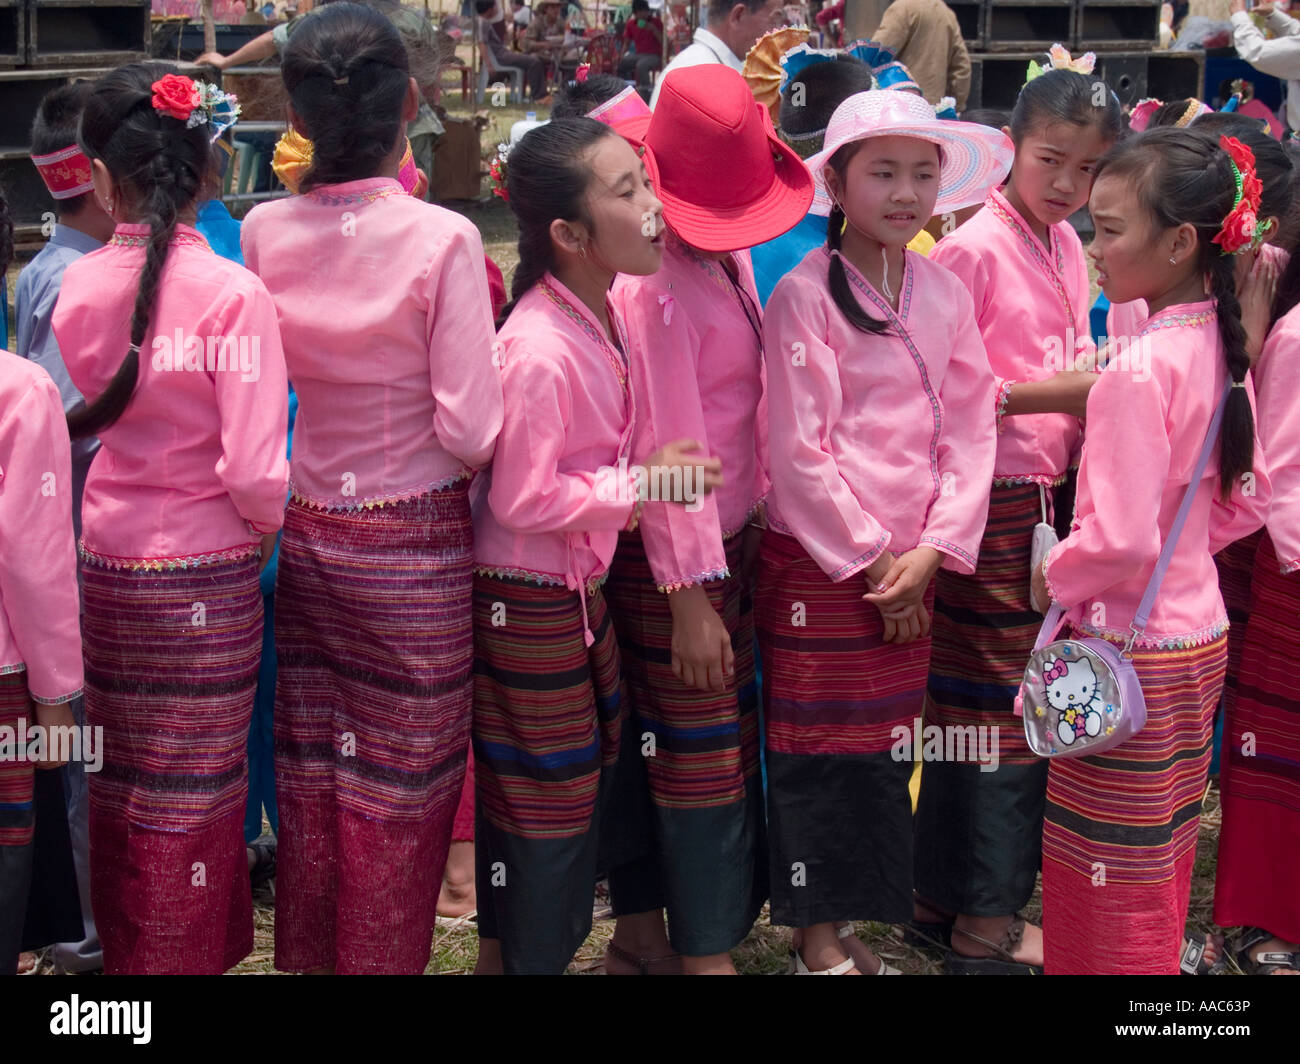 a lineup of traditional Lao skirts worn by girls at the Bun Bang Fai Rocket Festival Muang Singh Laos - Stock Image